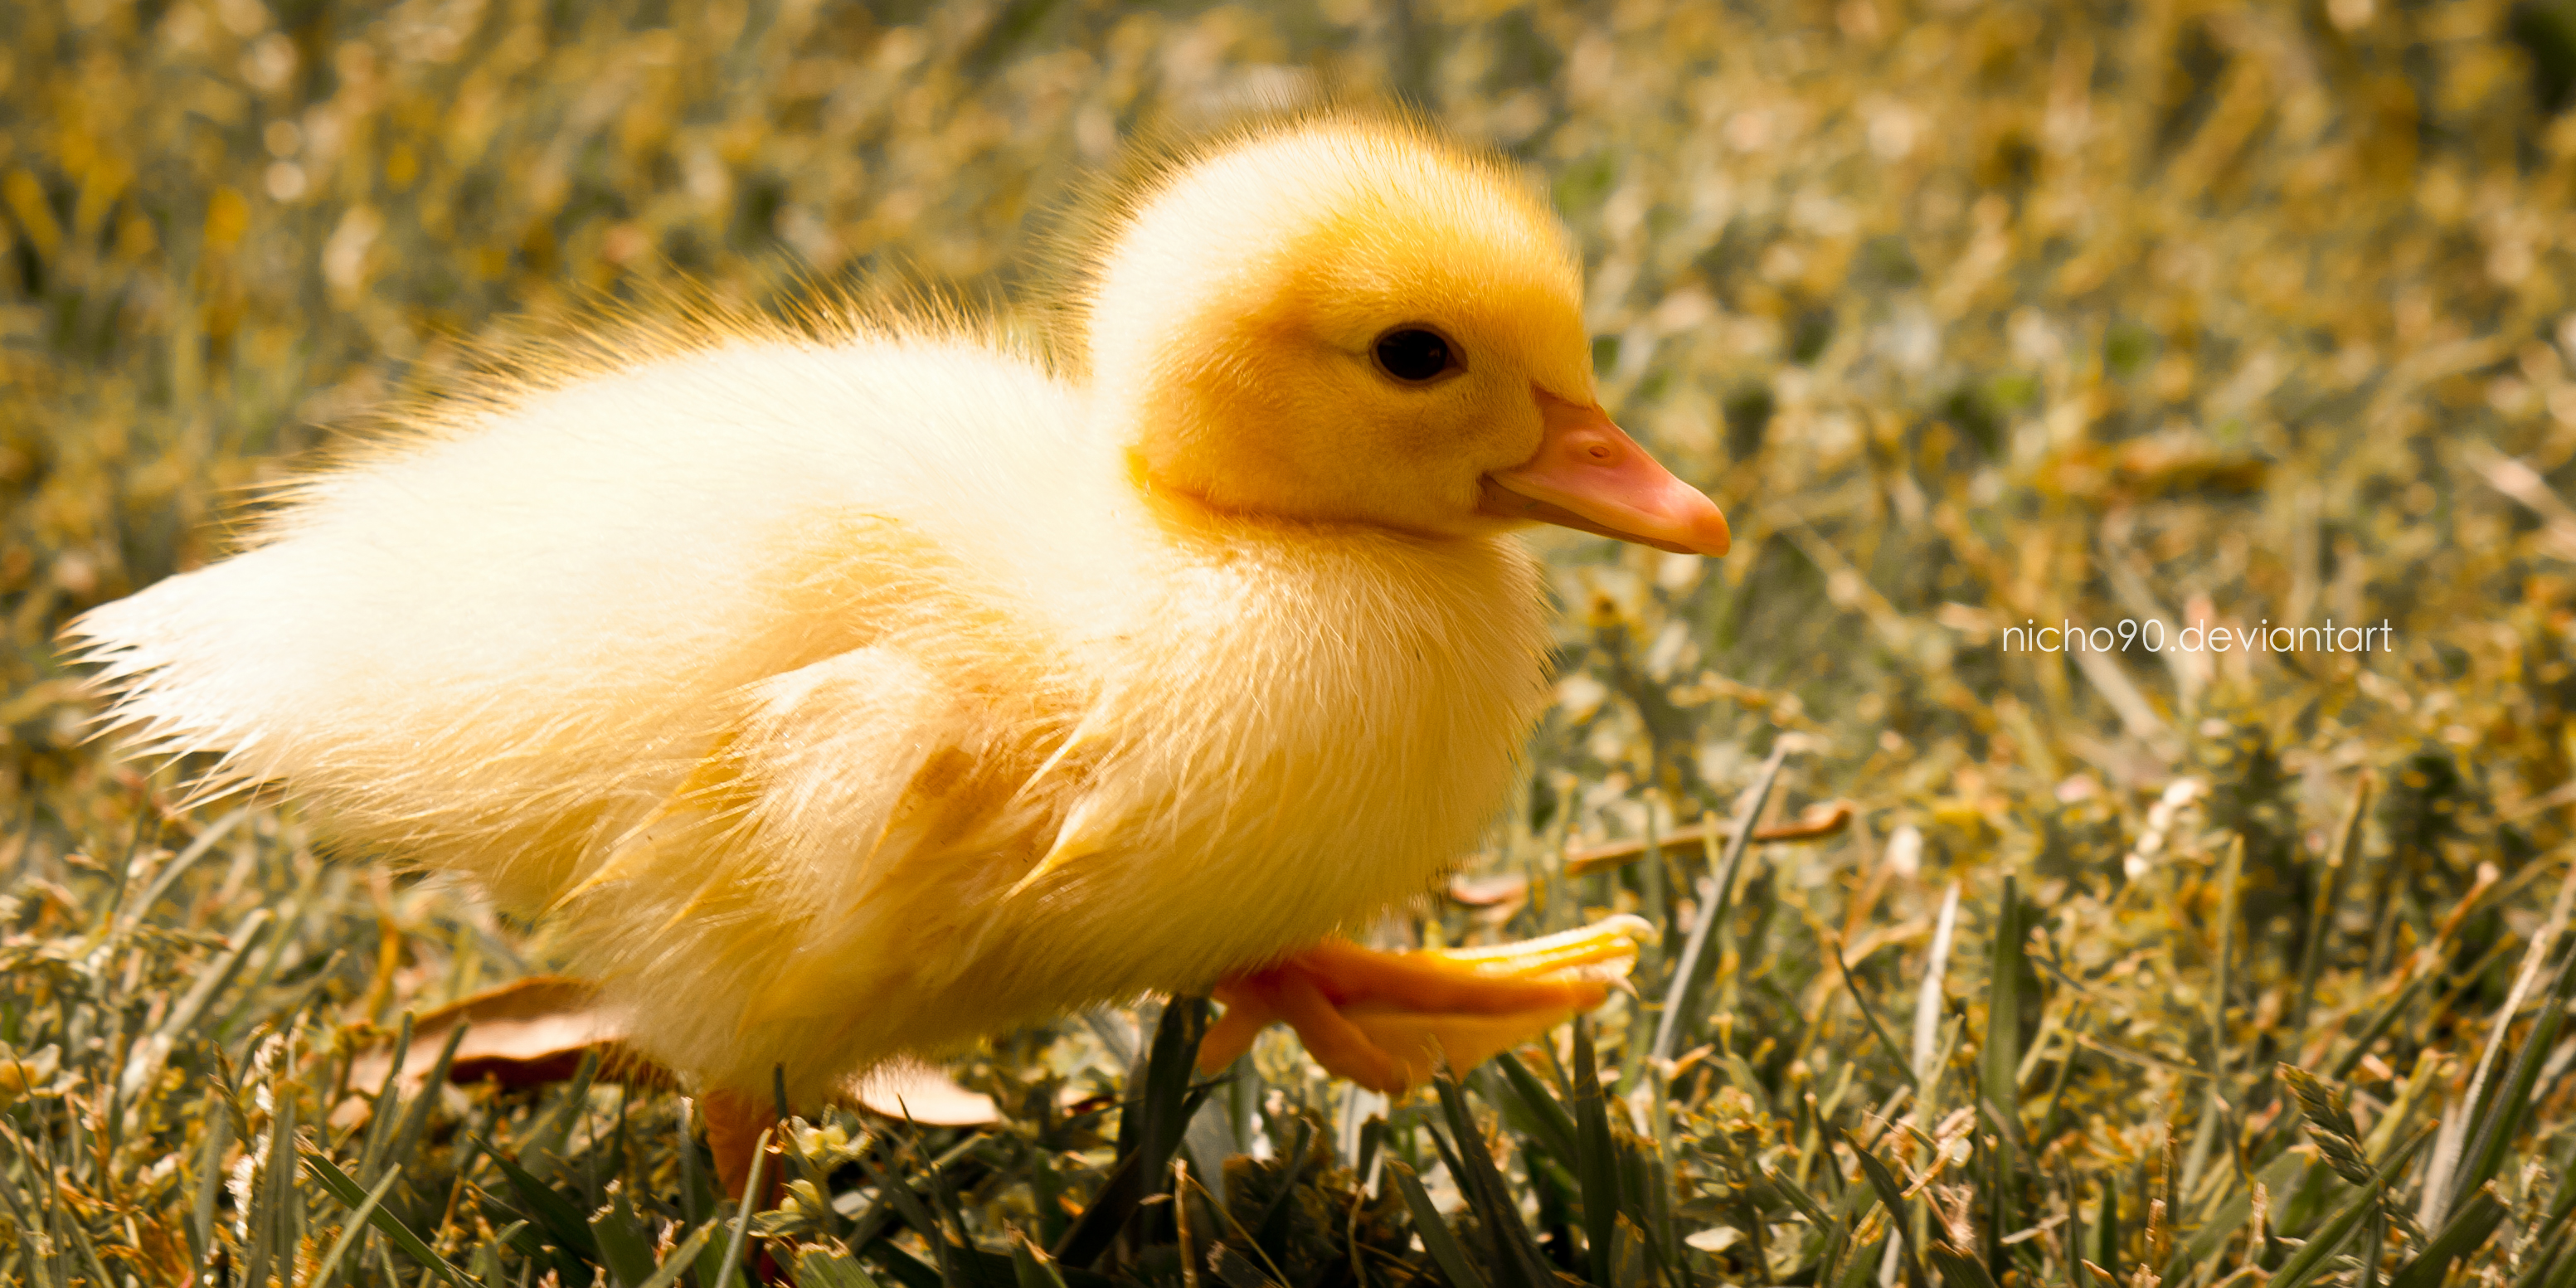 yellow baby ducks walking - photo #12